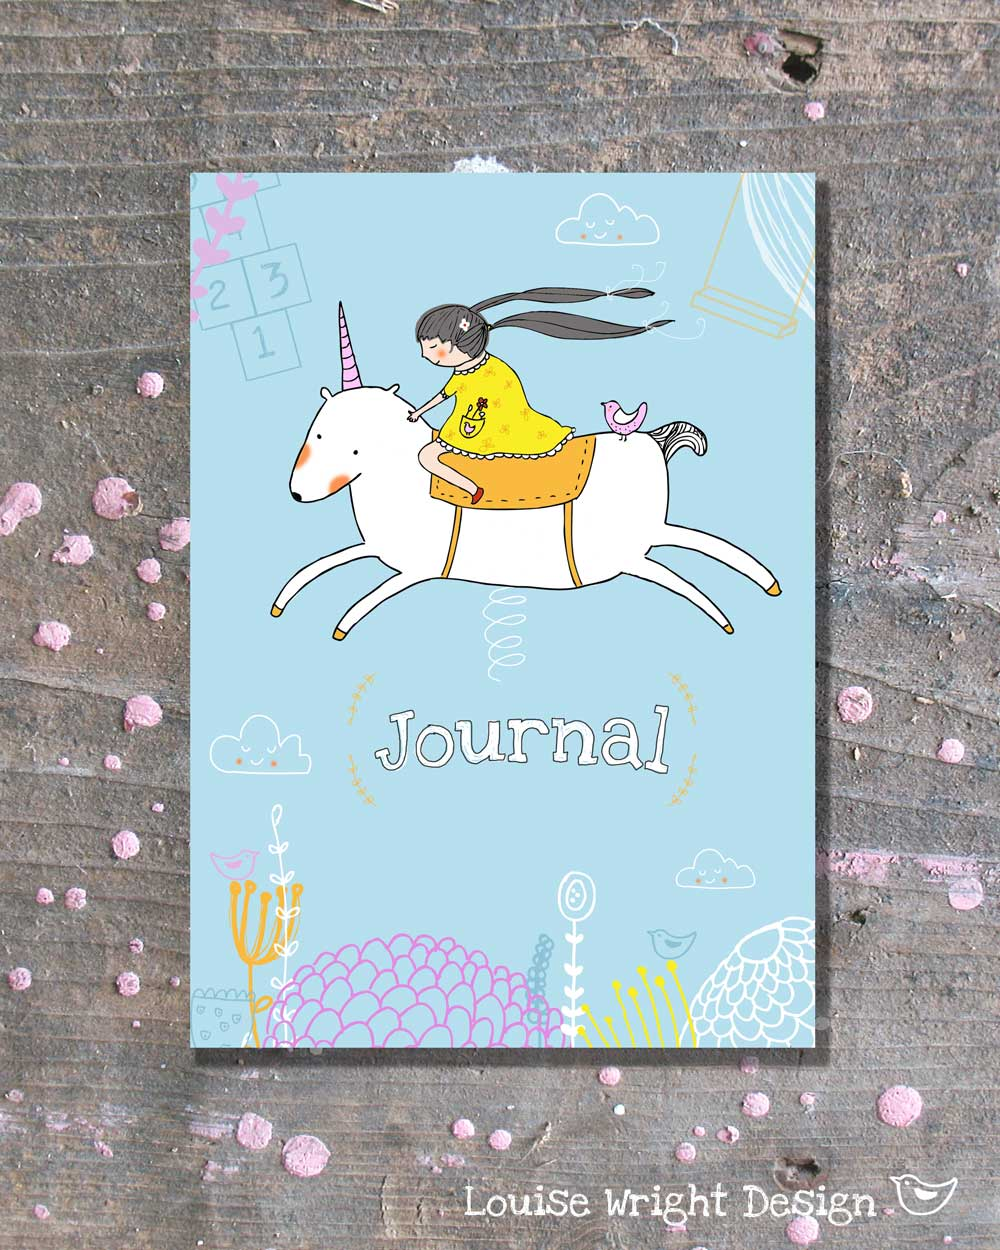 Louise_Wright_GTS2013_R1_UnicornJournal.jpg